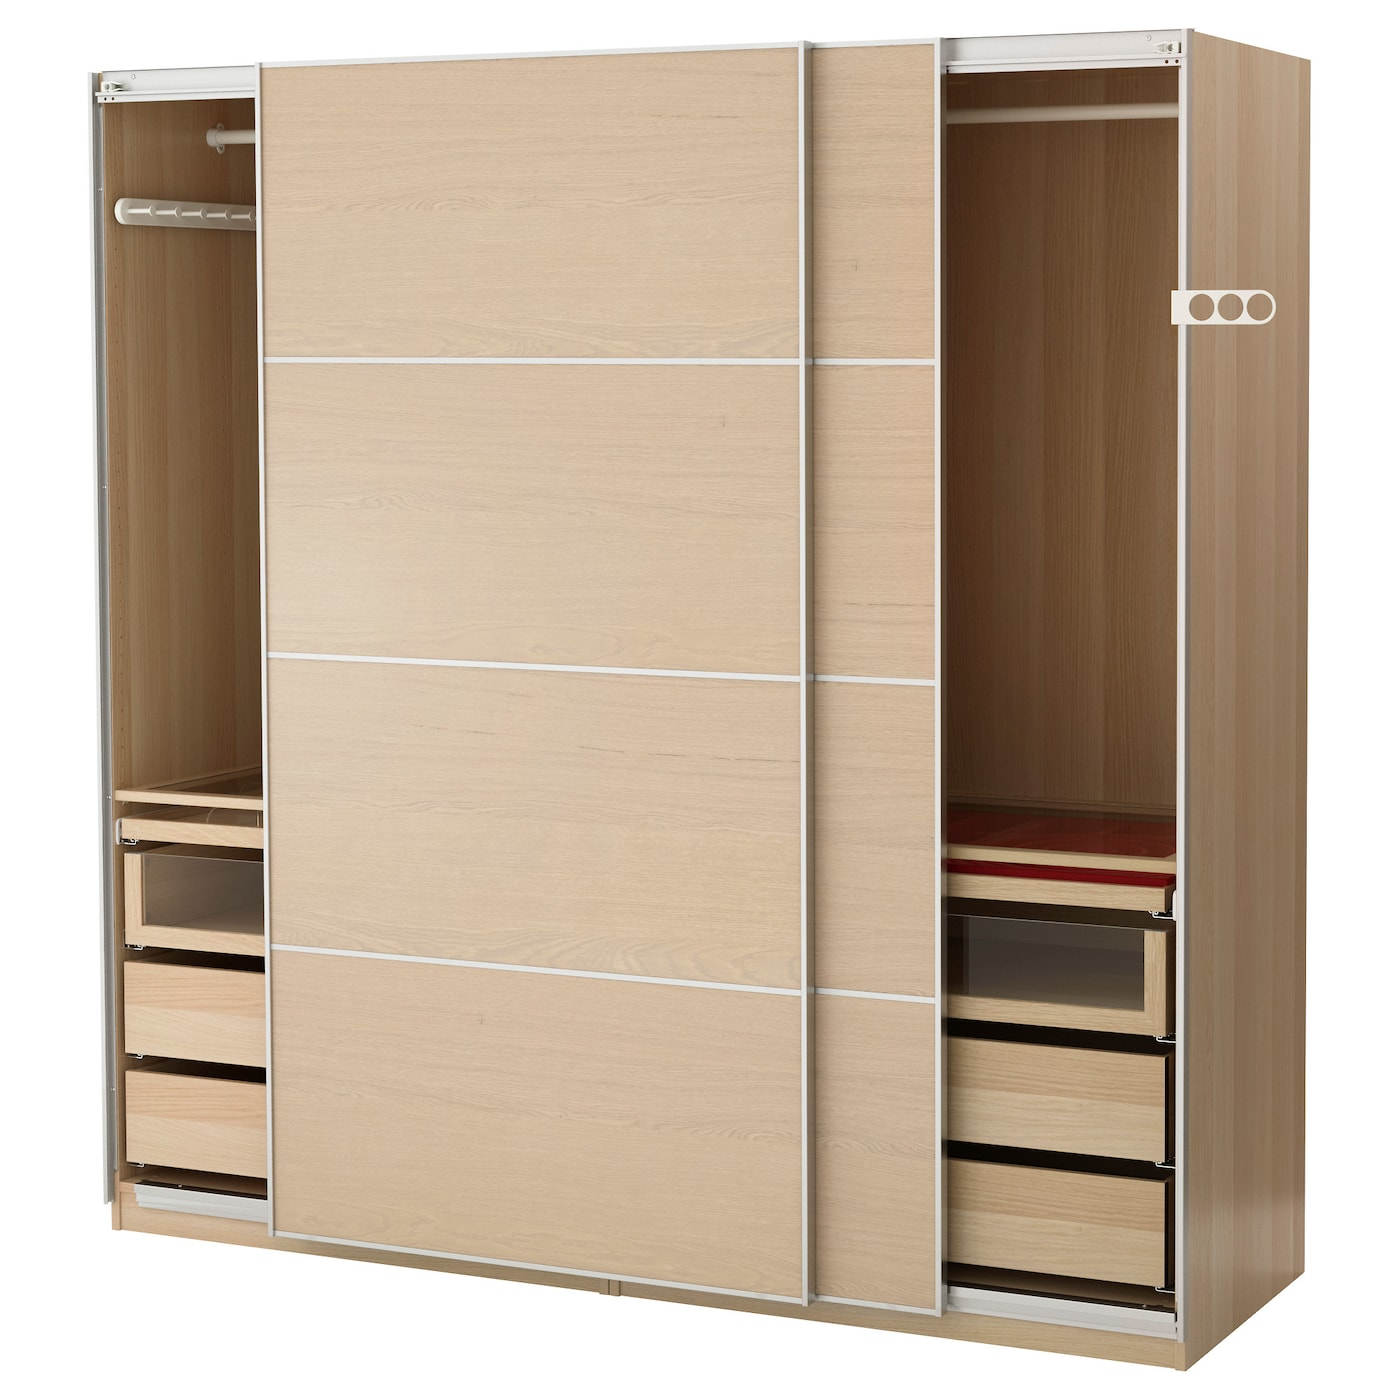 pax wardrobes design your own wardrobe at ikea. Black Bedroom Furniture Sets. Home Design Ideas